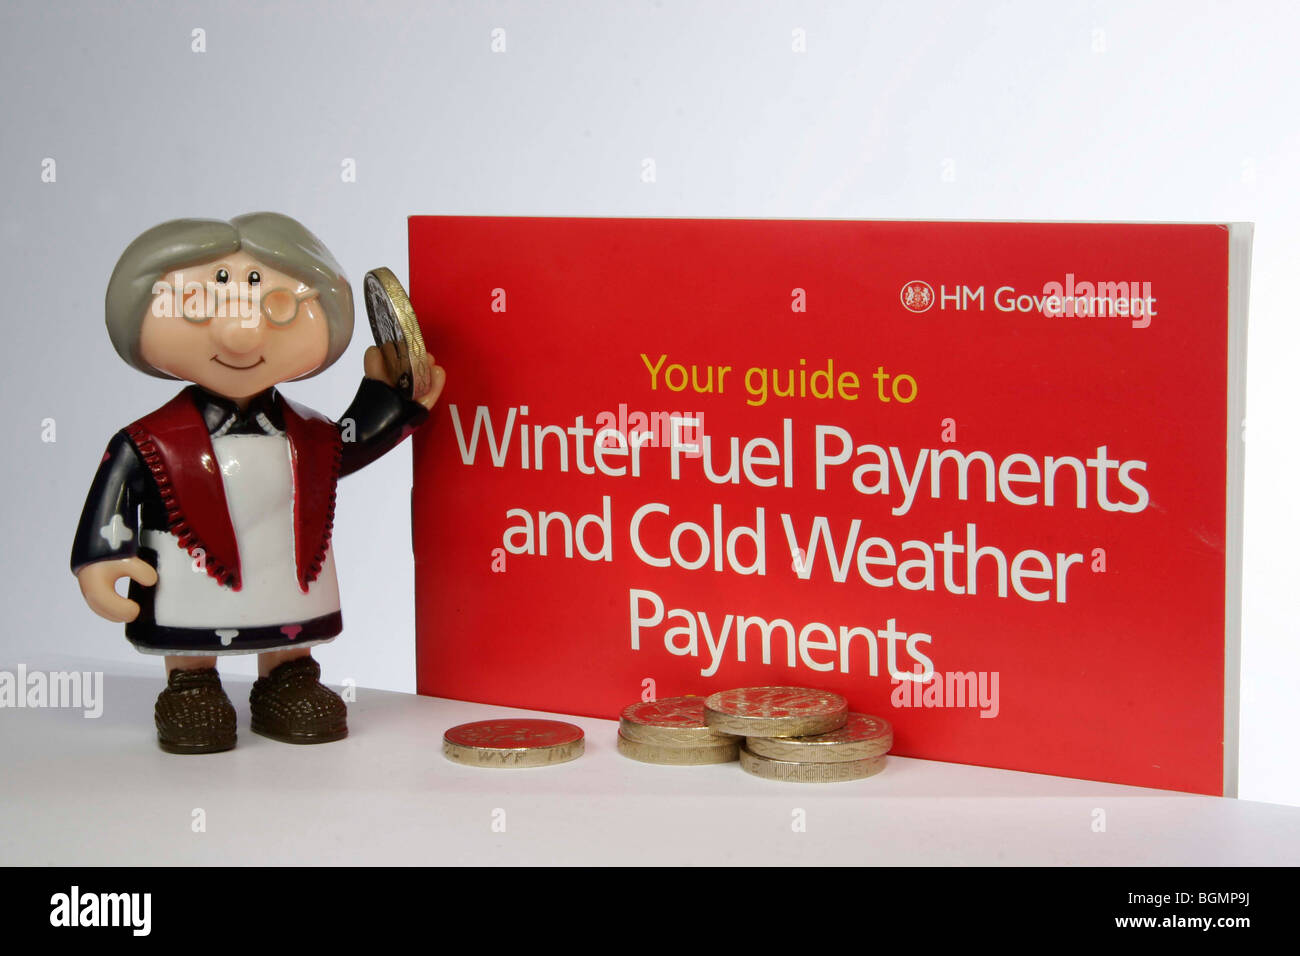 Model of old lady holding money next to a government leaflet for winter fuel and cold weather payments - Stock Image